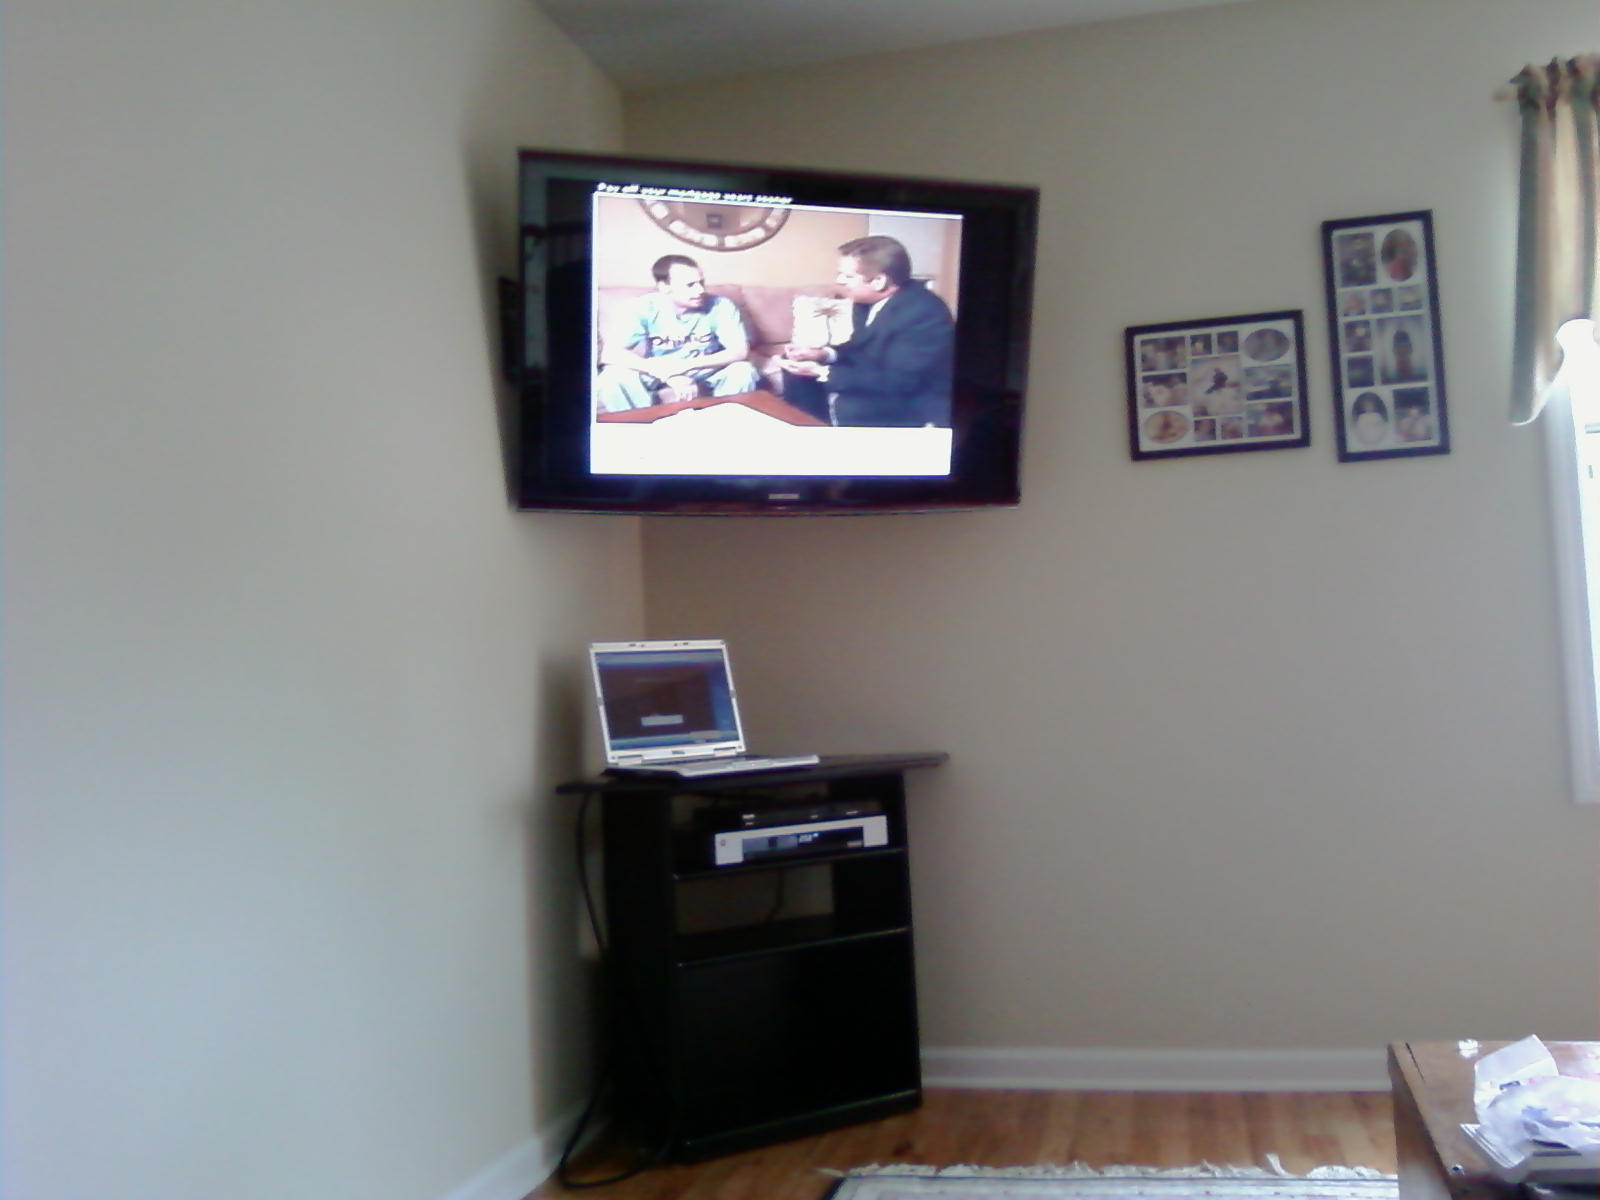 branford ct tv install in corner hooked up to a computer